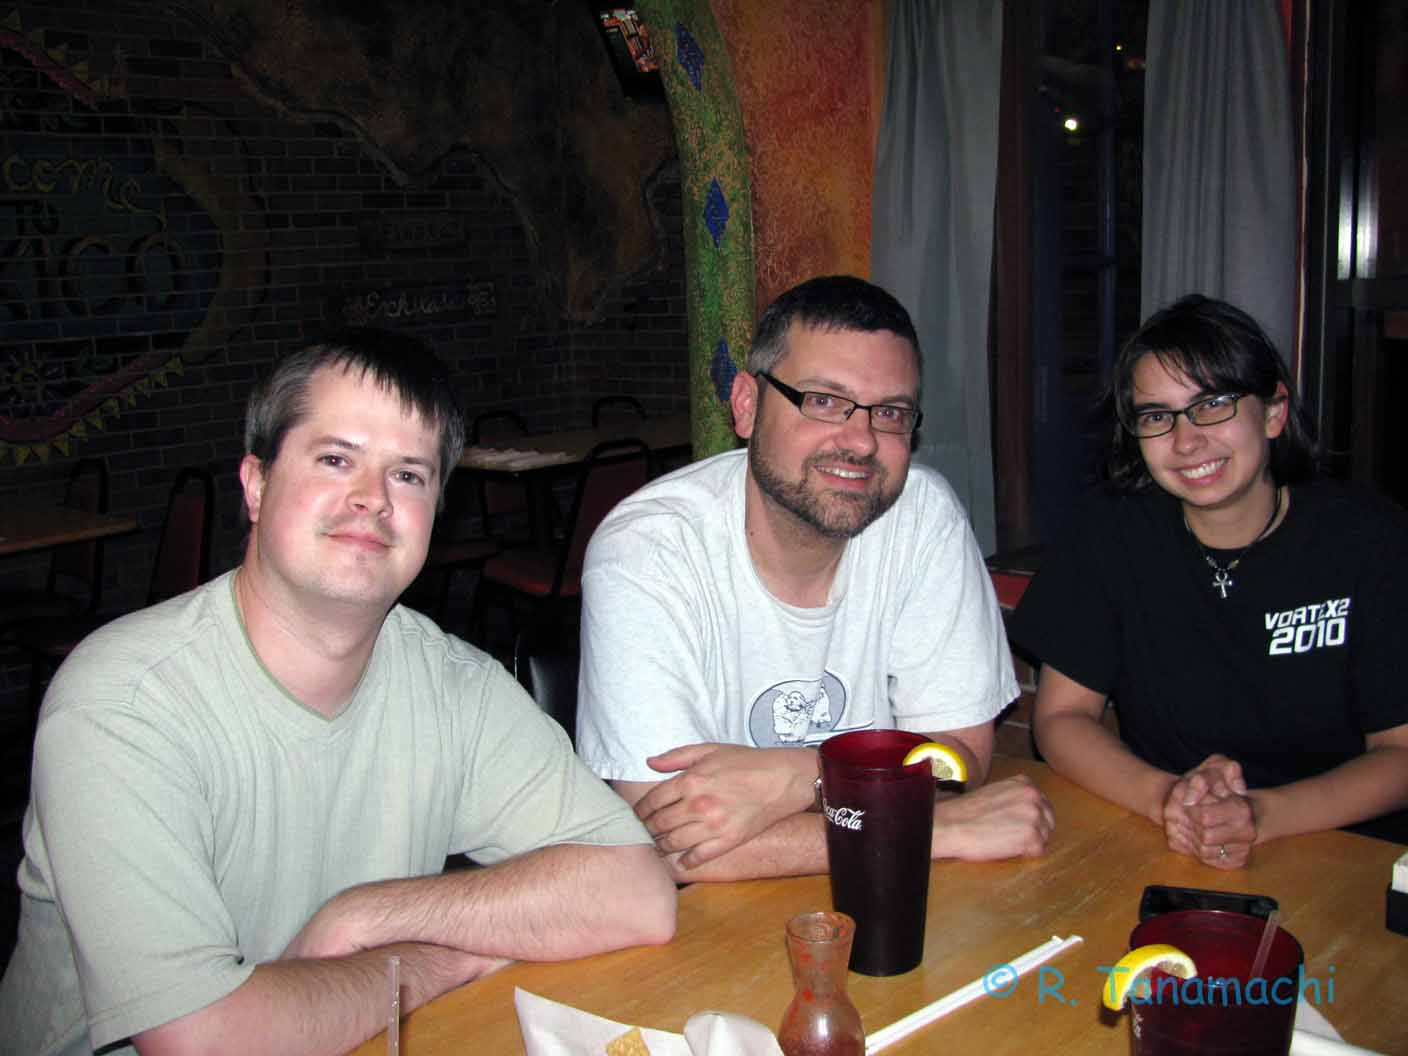 Dan D., Amos M., Robin T. meet up at Playa Azul